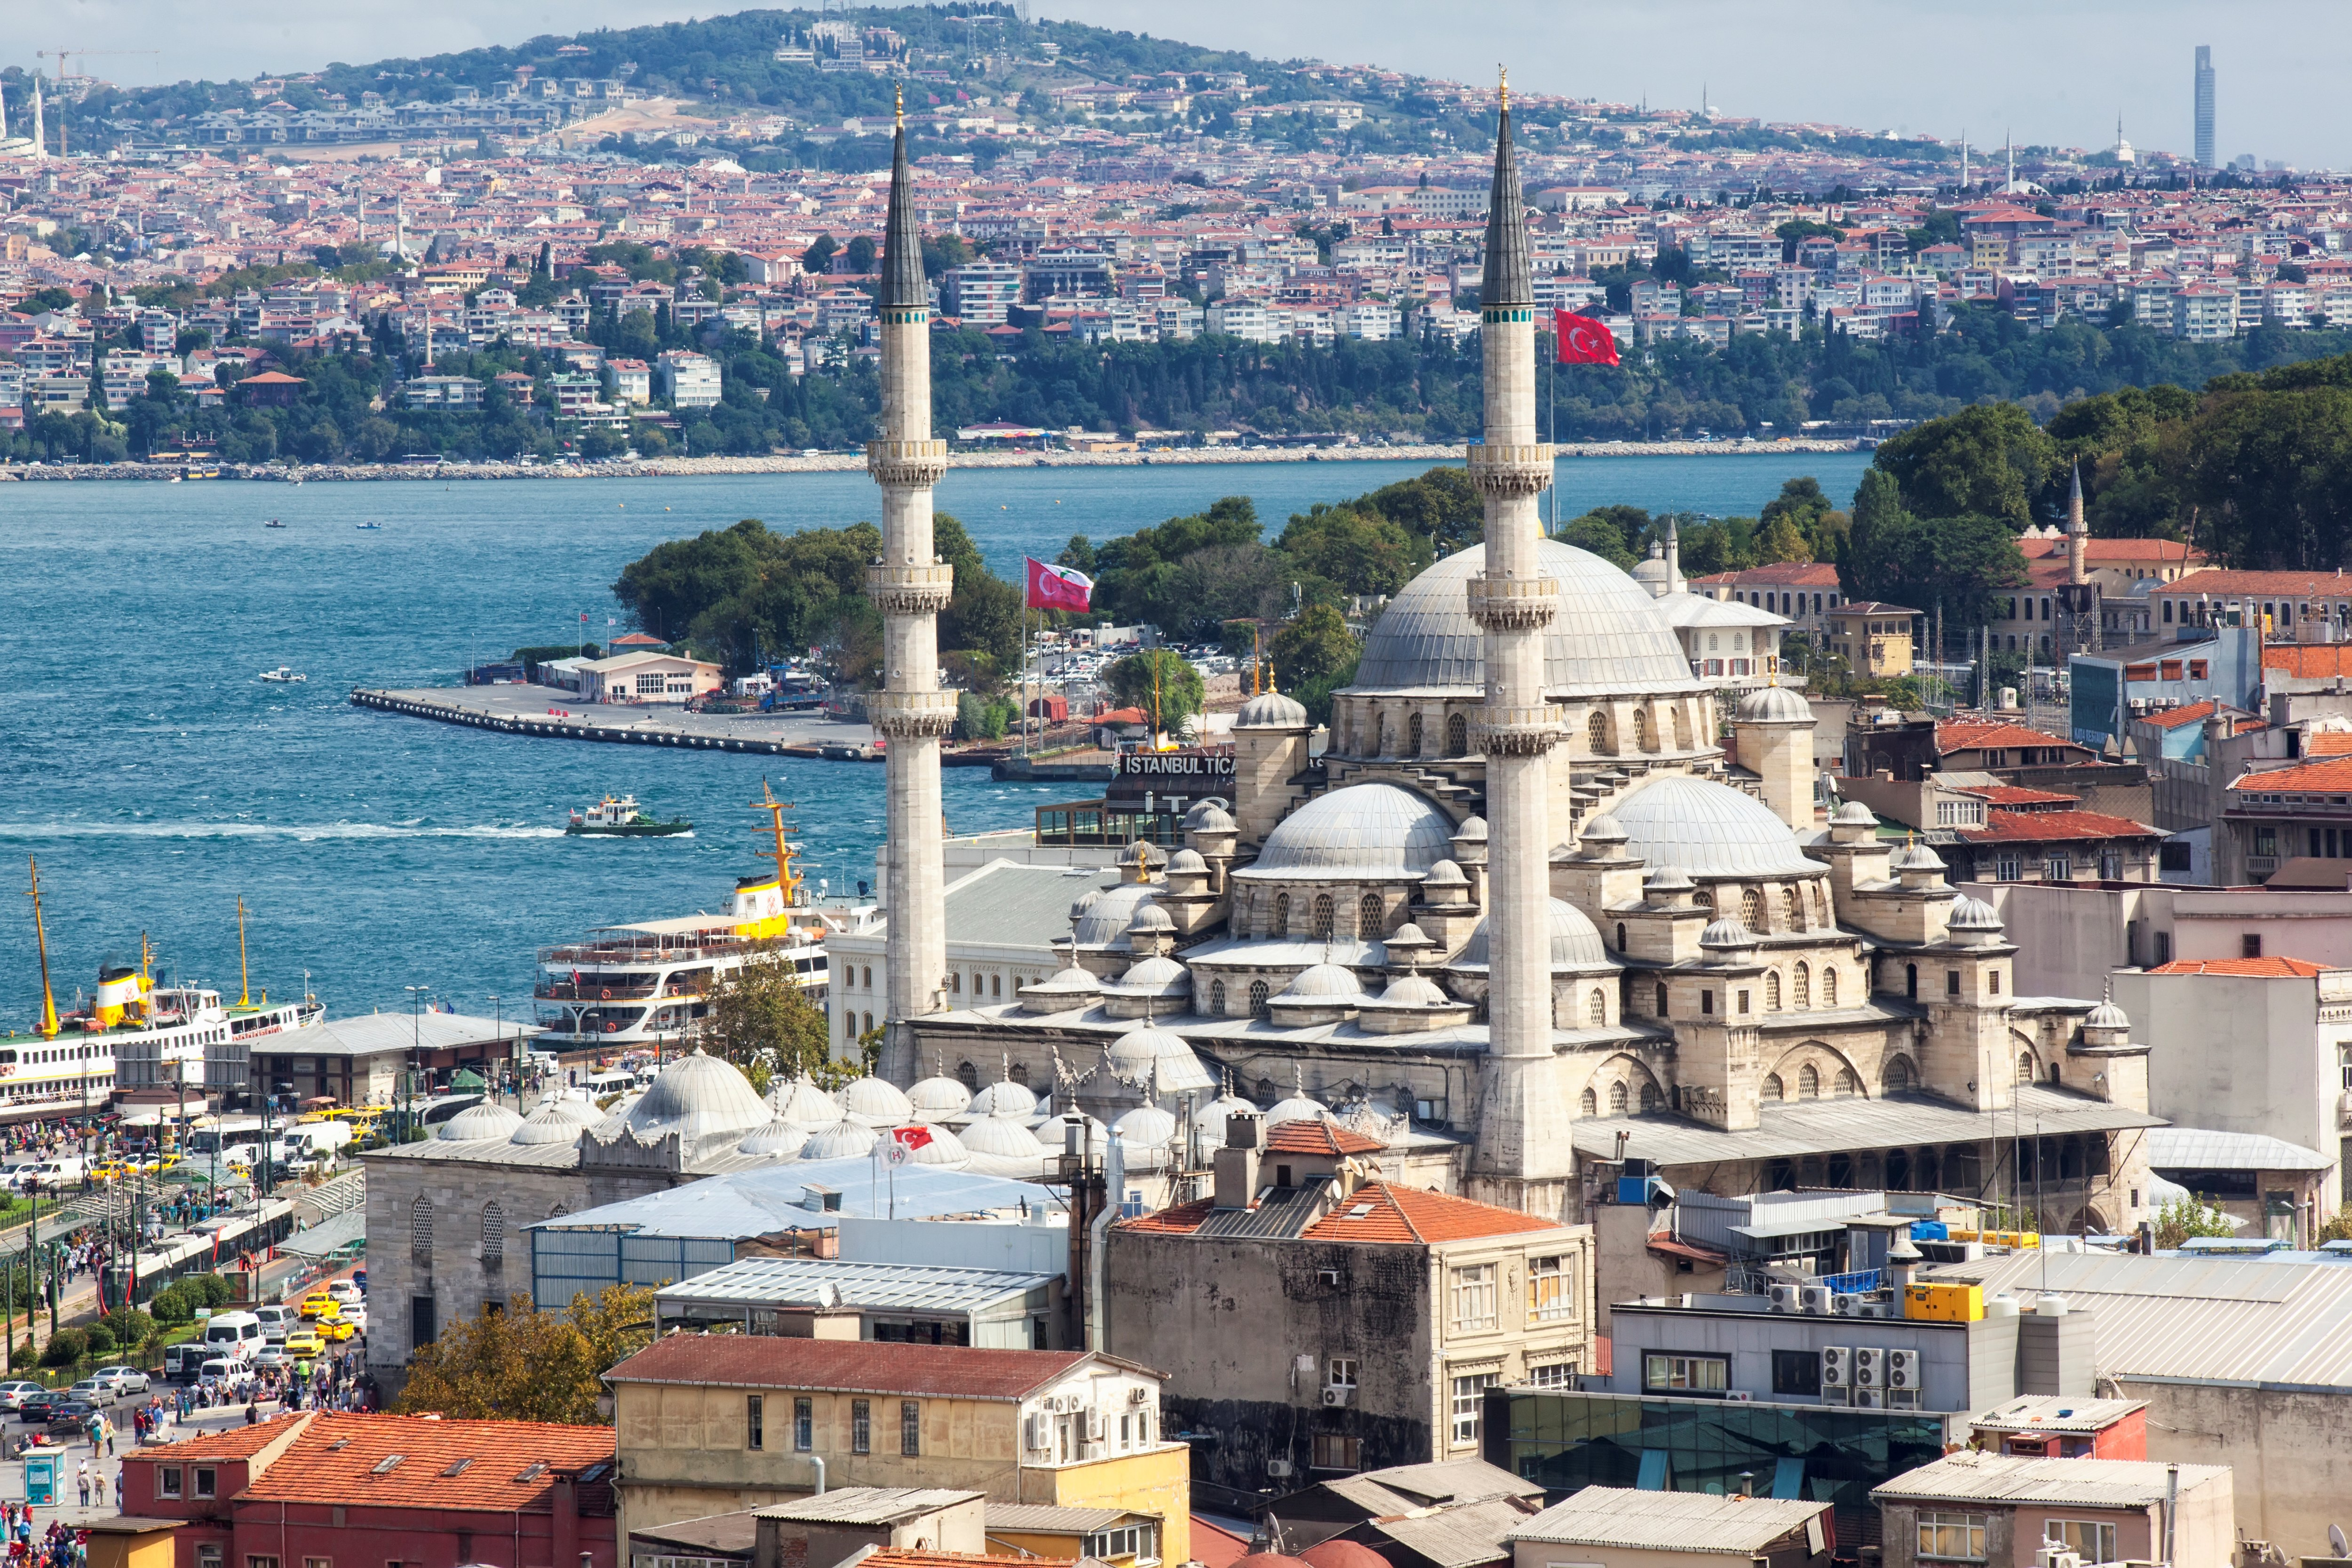 Bosphorus Strait Entertainment and Dinner Cruise in Istanbul